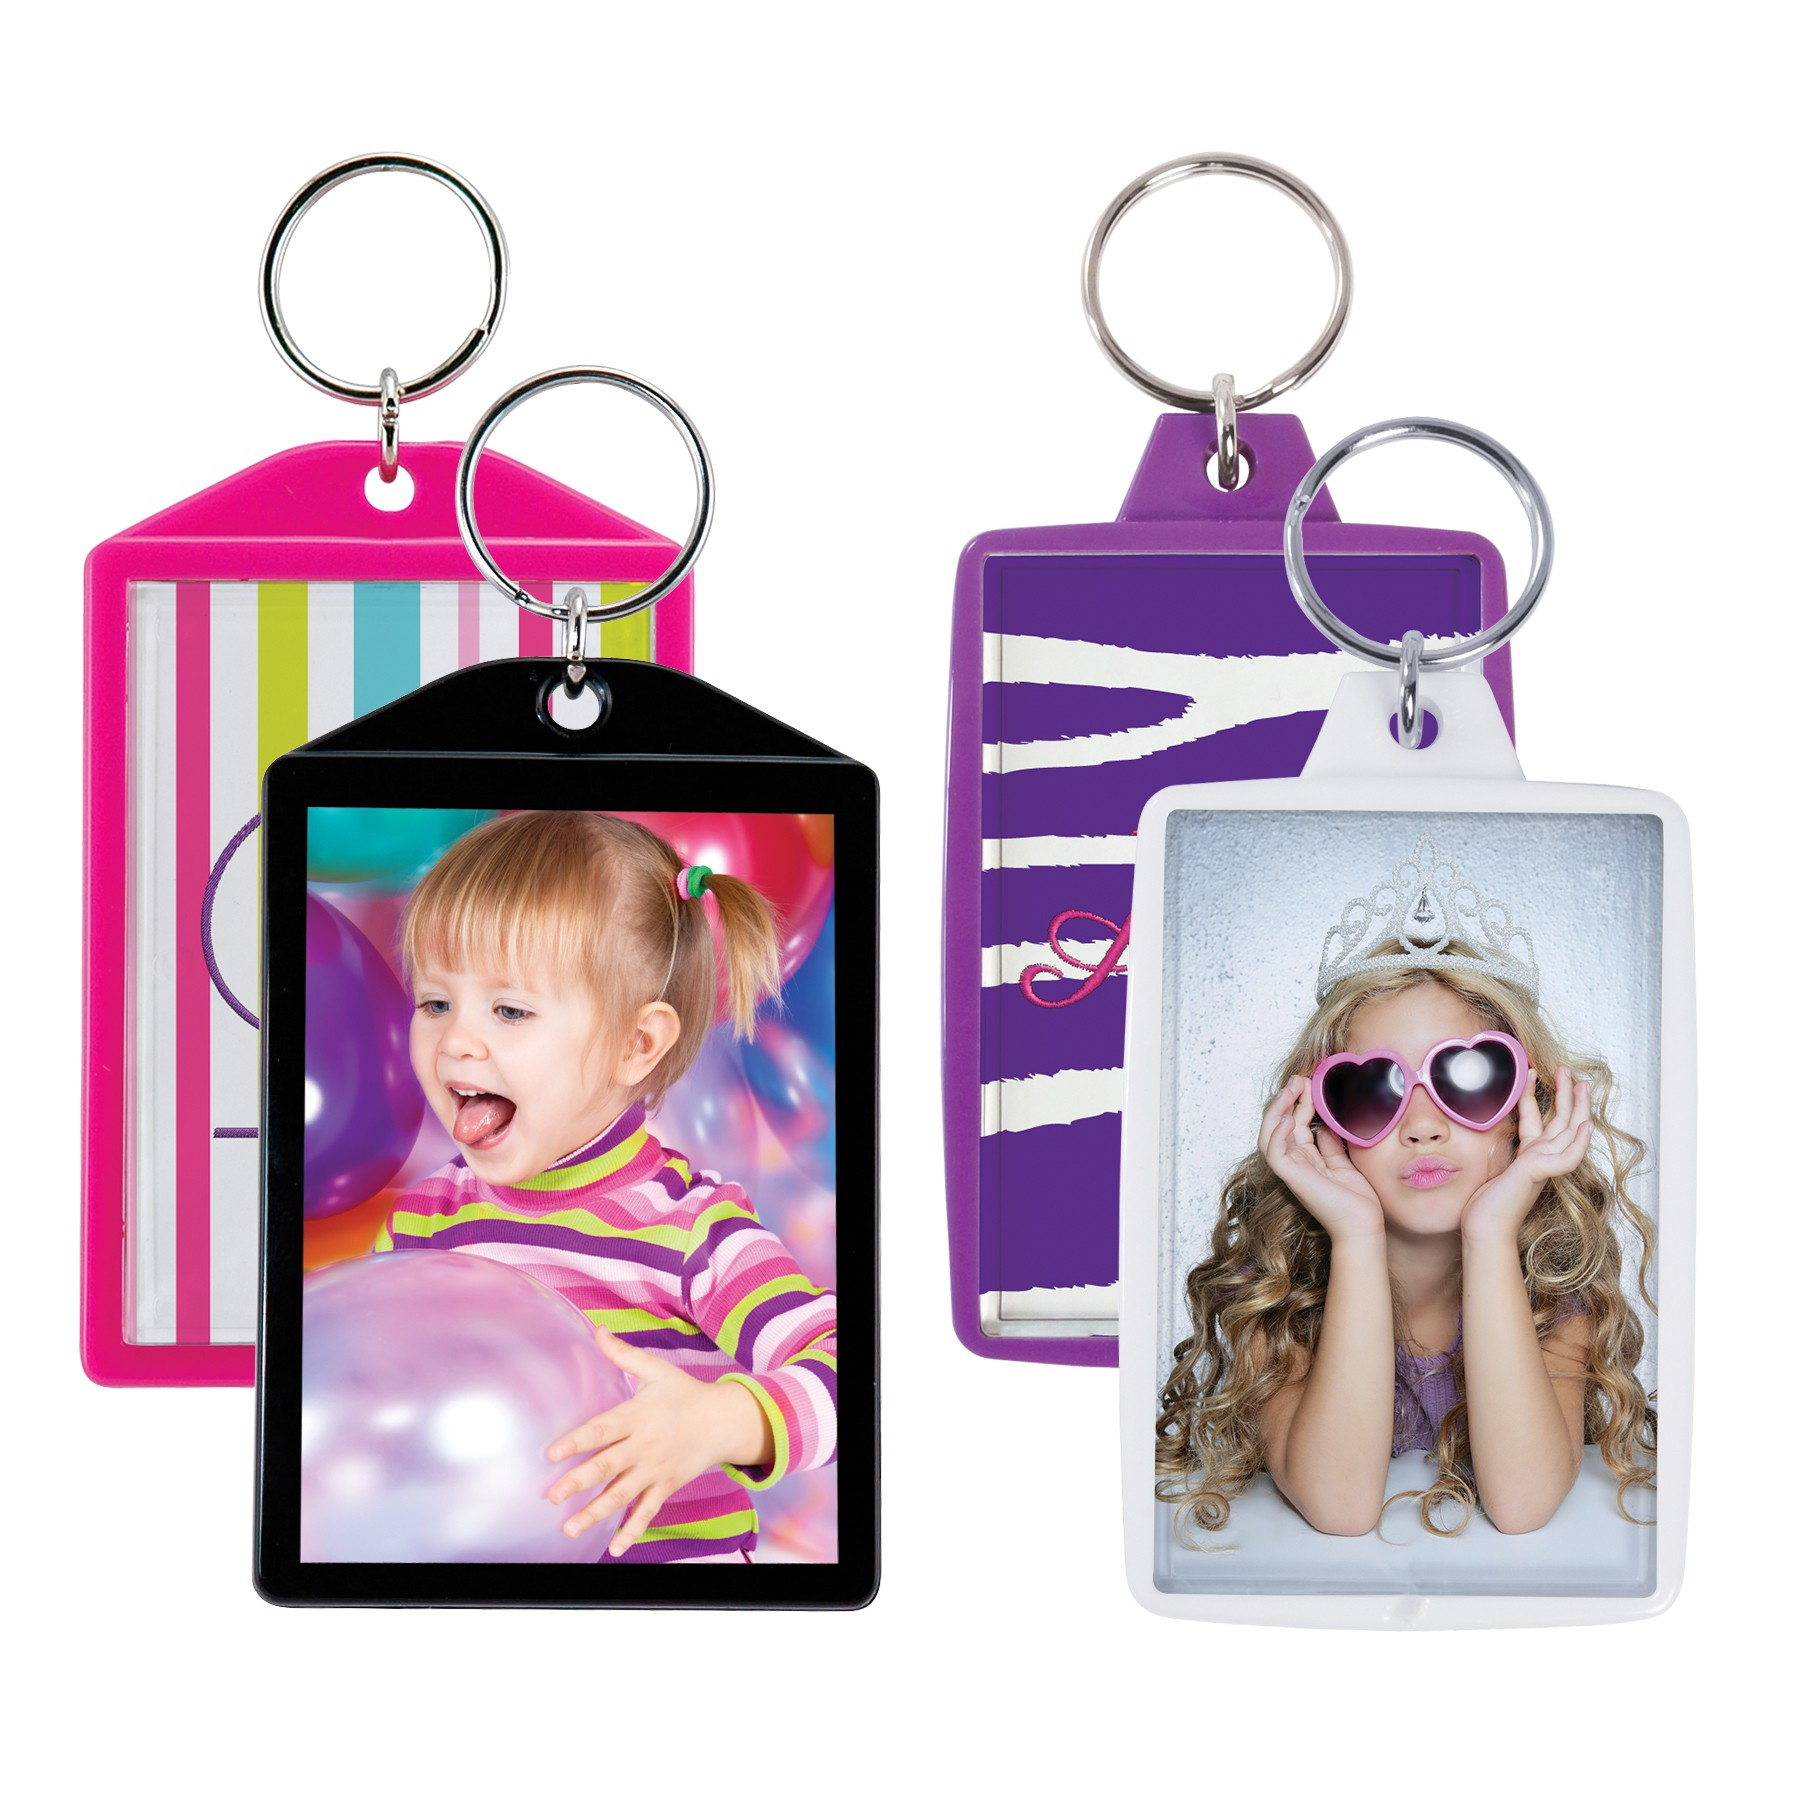 wholesale color photo keychains snap in plastic for special event photographers bulk